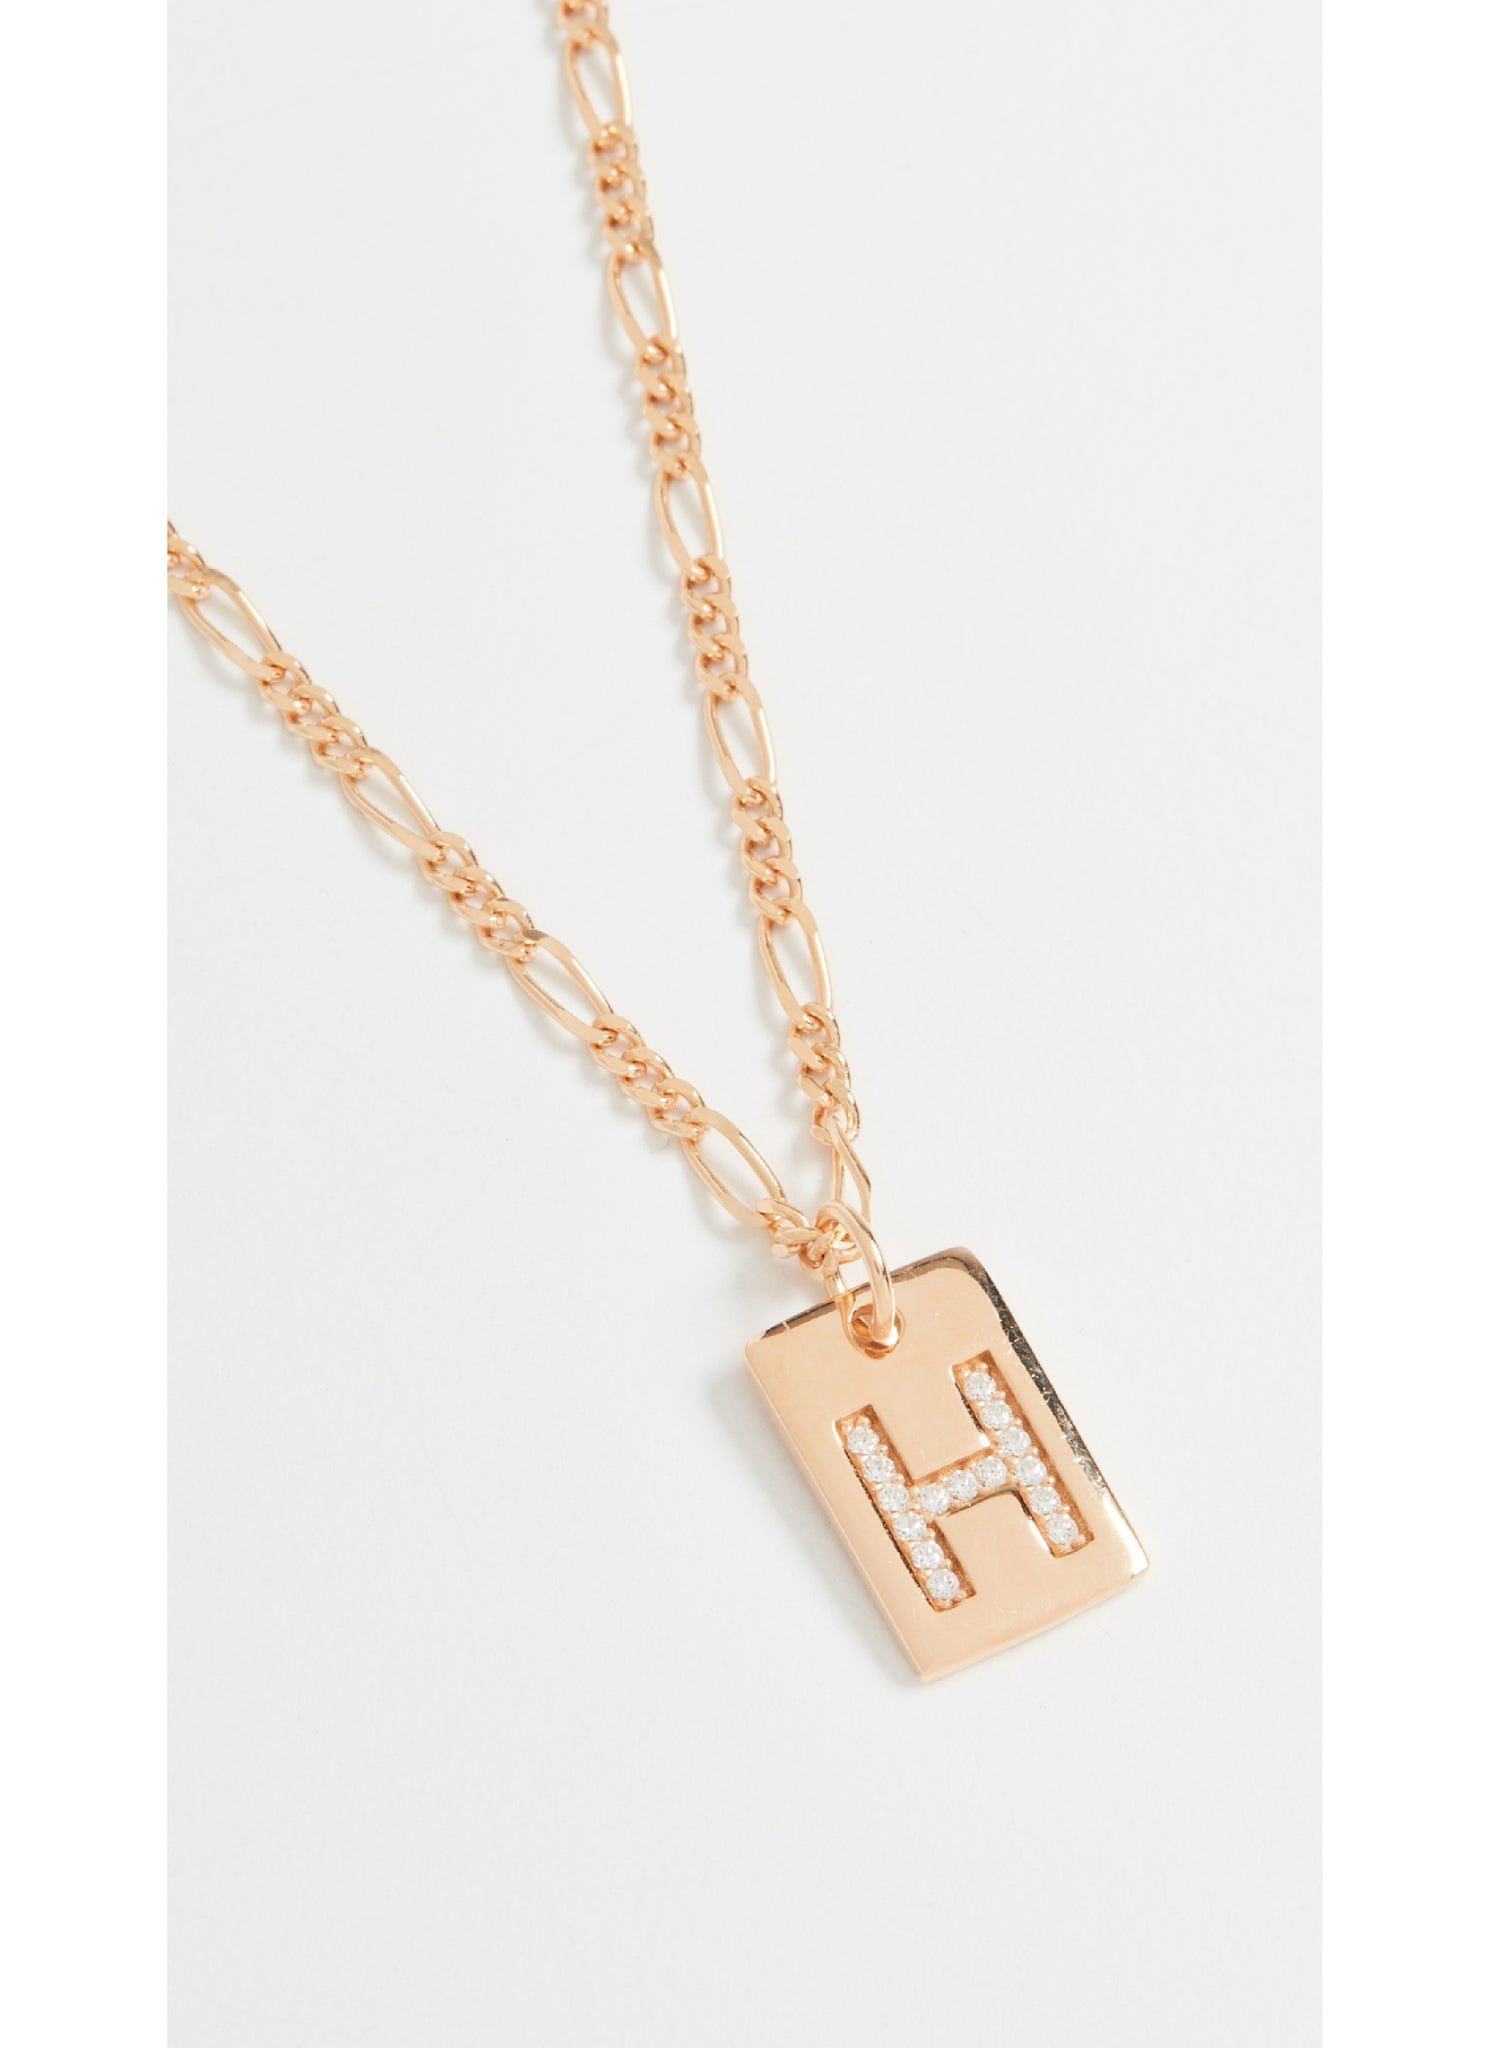 Tilly Initial Necklace in Gold